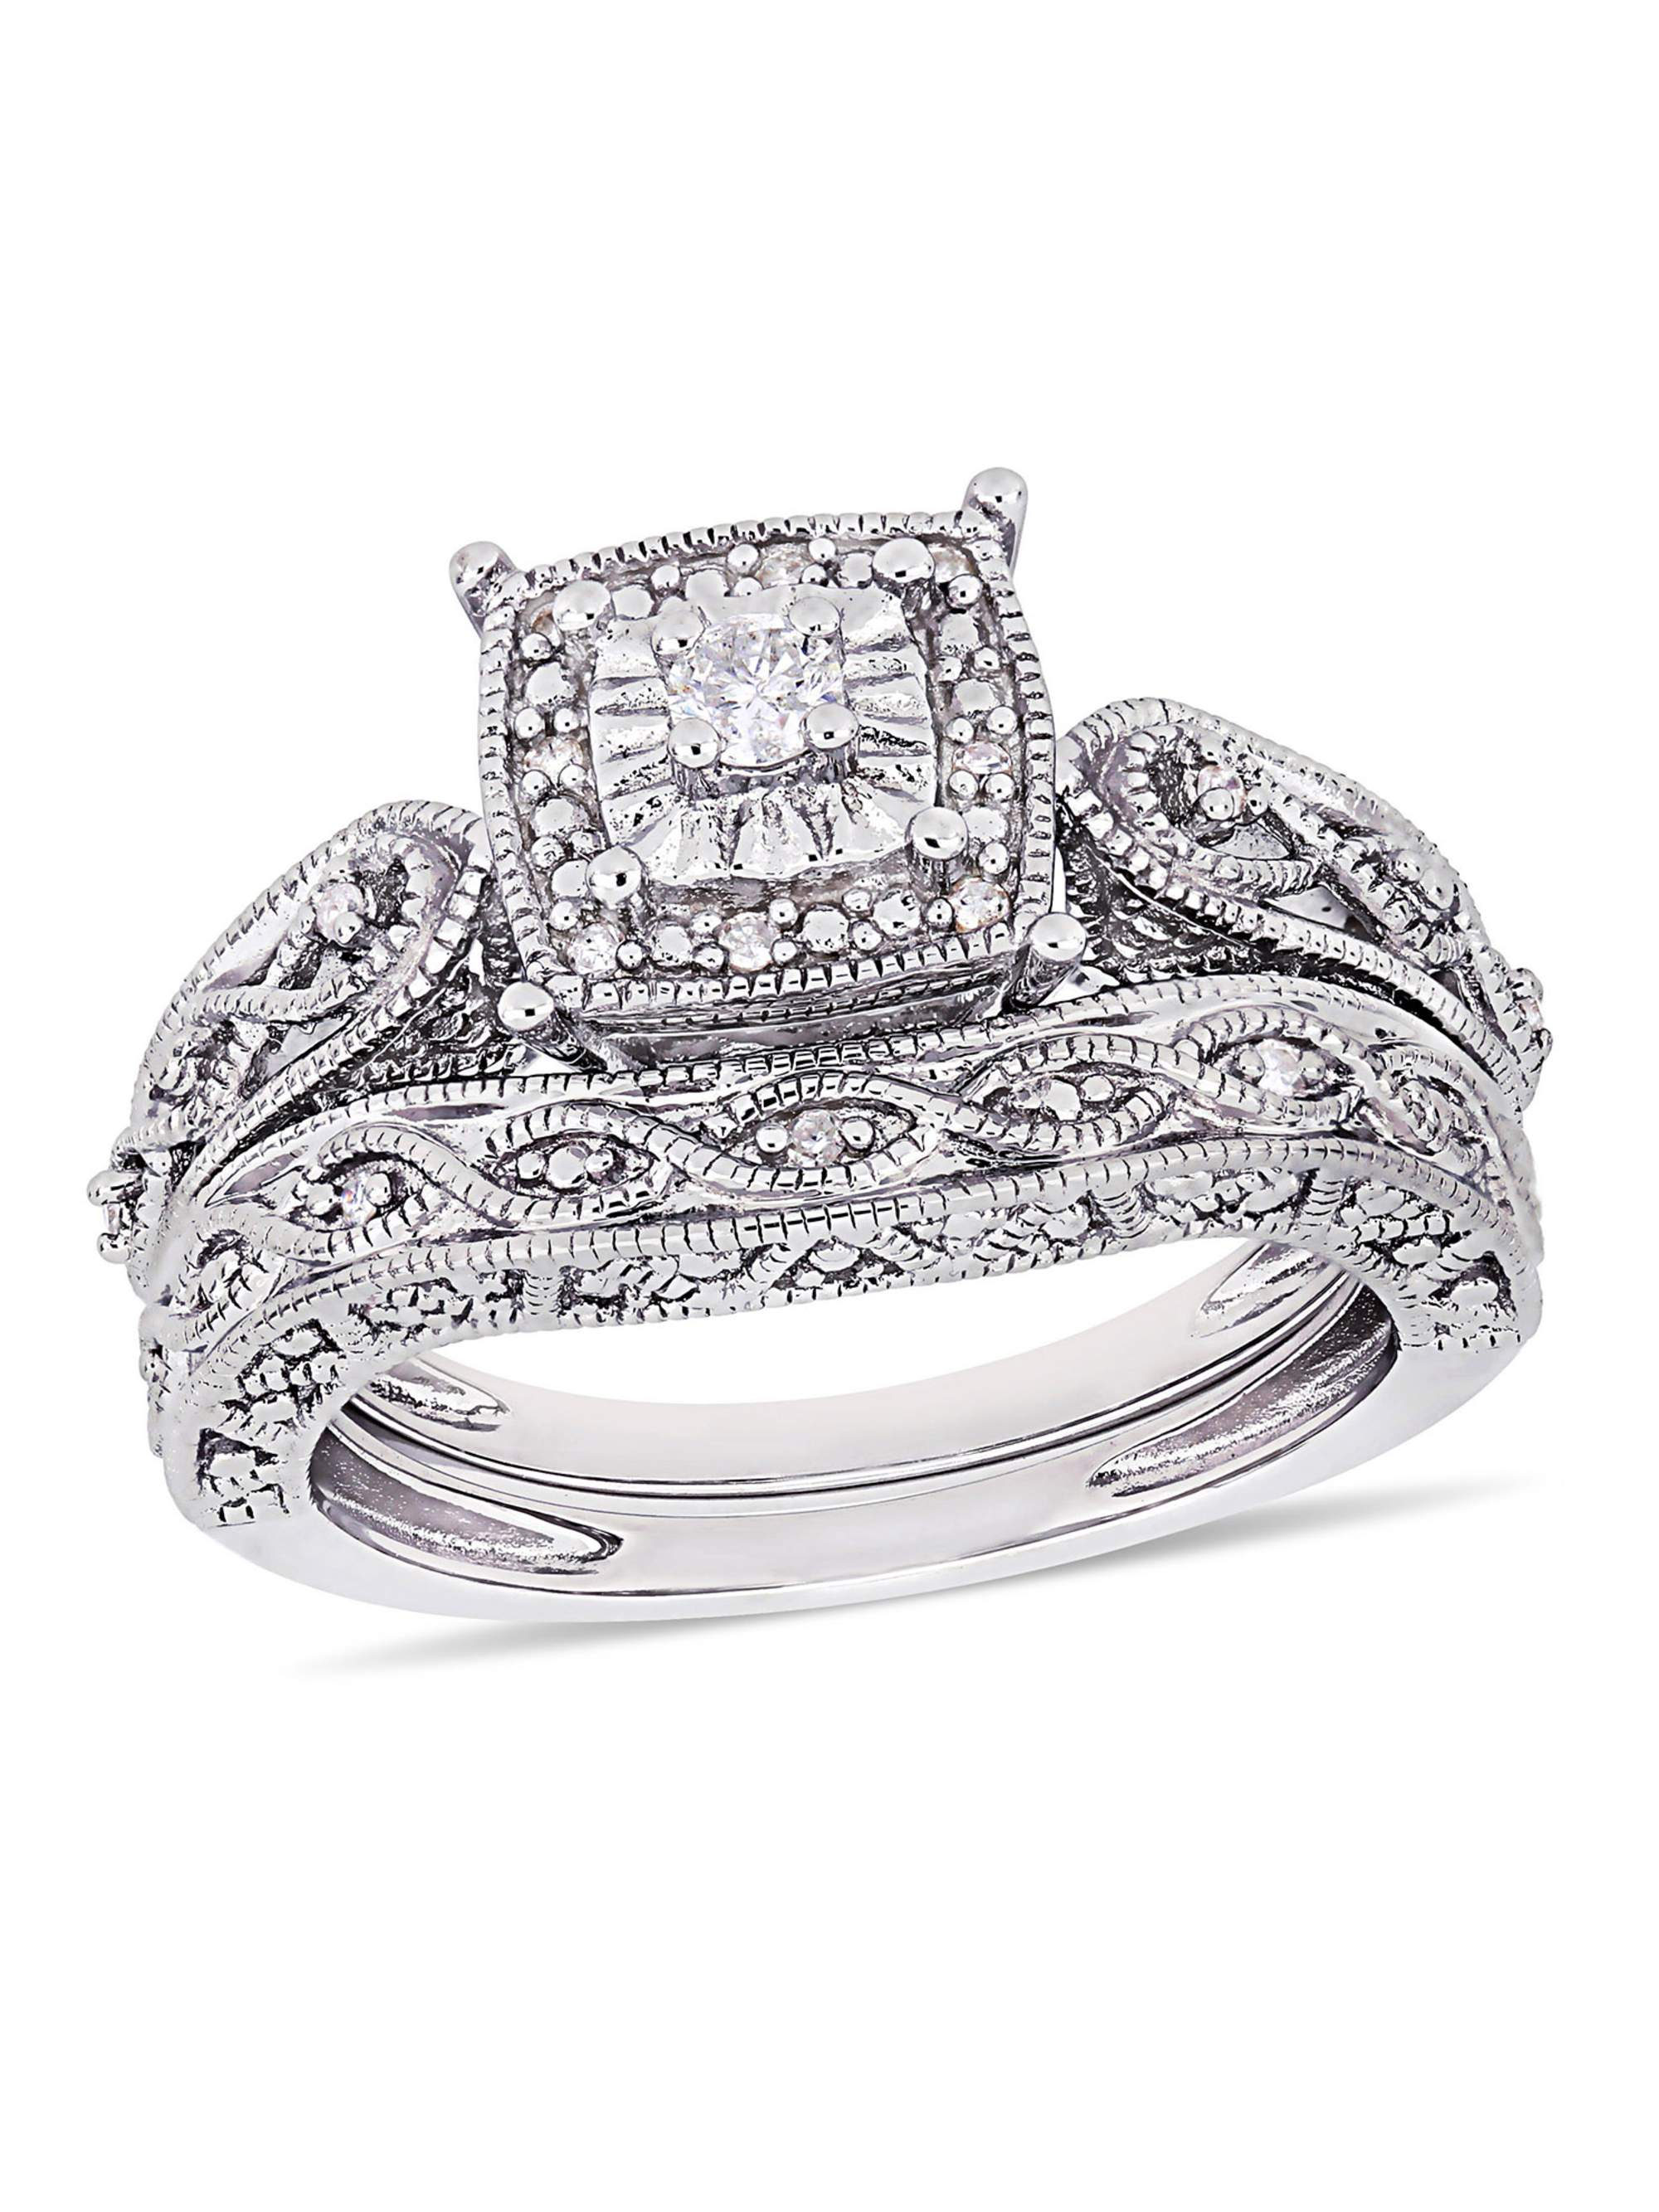 Miabella 1/5 Carat T.W. Diamond Sterling Silver Halo Bridal Set